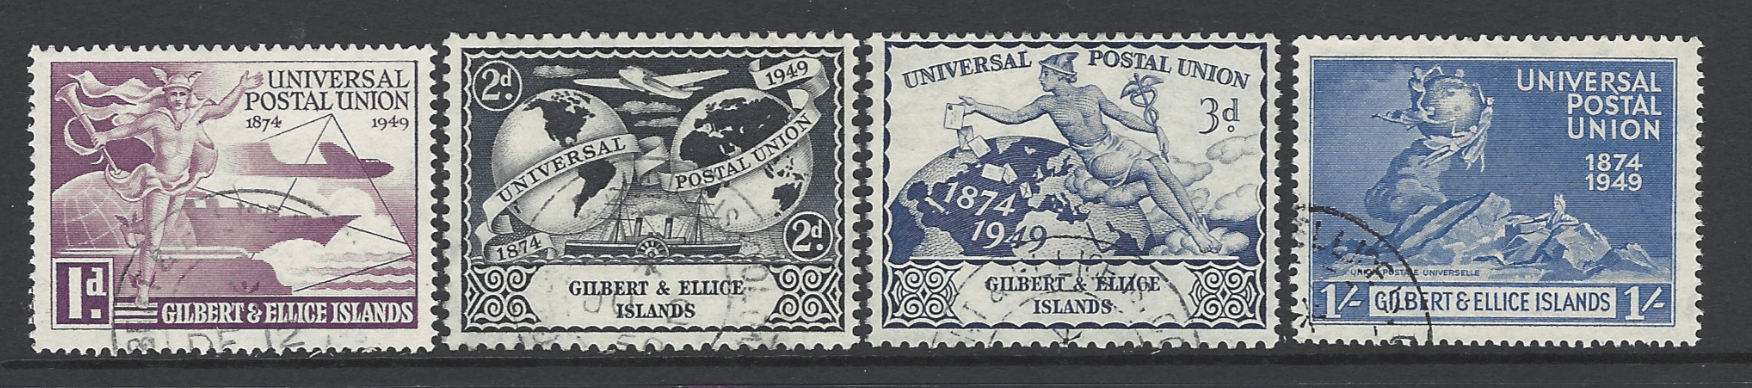 SG 59-62, Gilbert and Ellice Islands Stamps